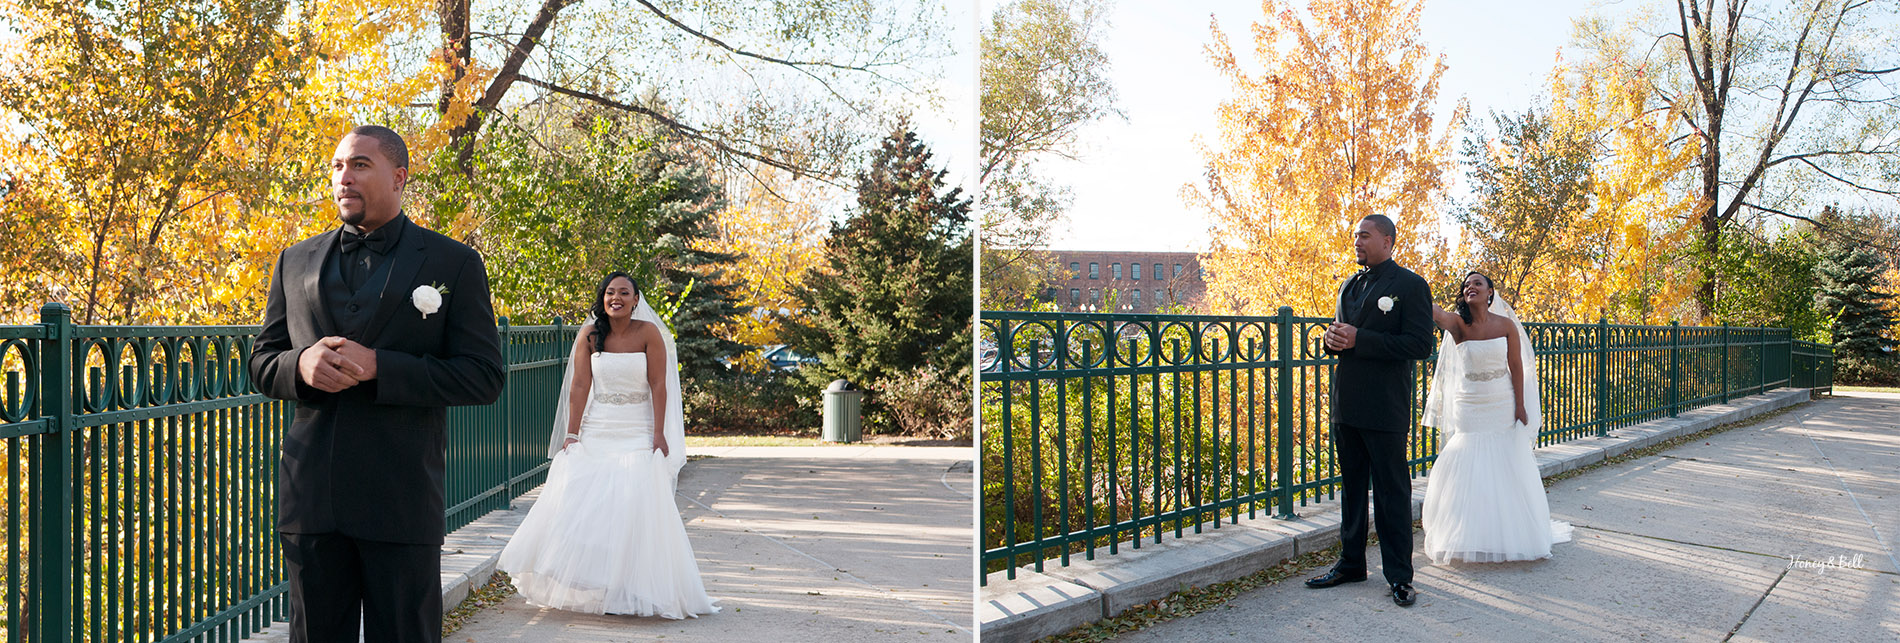 fields-wedding-rochester-michigan-detroit-wedding-photographer-royal-park-hotel-first-look-groom-bride-24